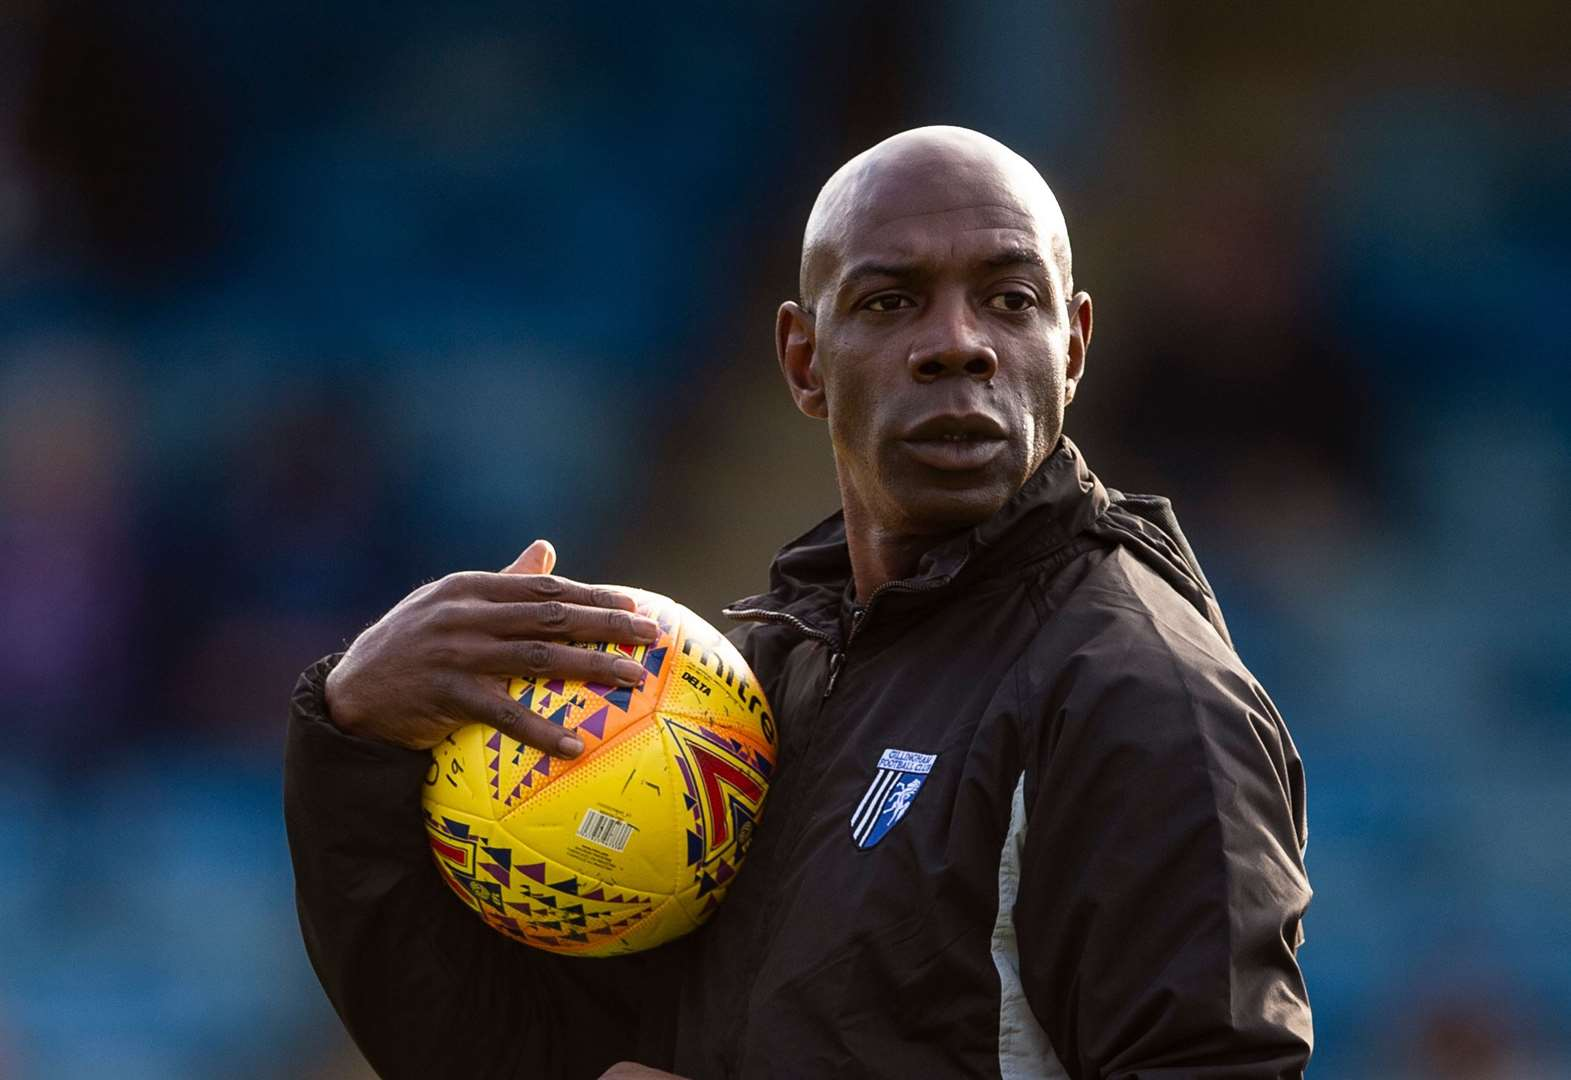 'Sad end' for Gills coach